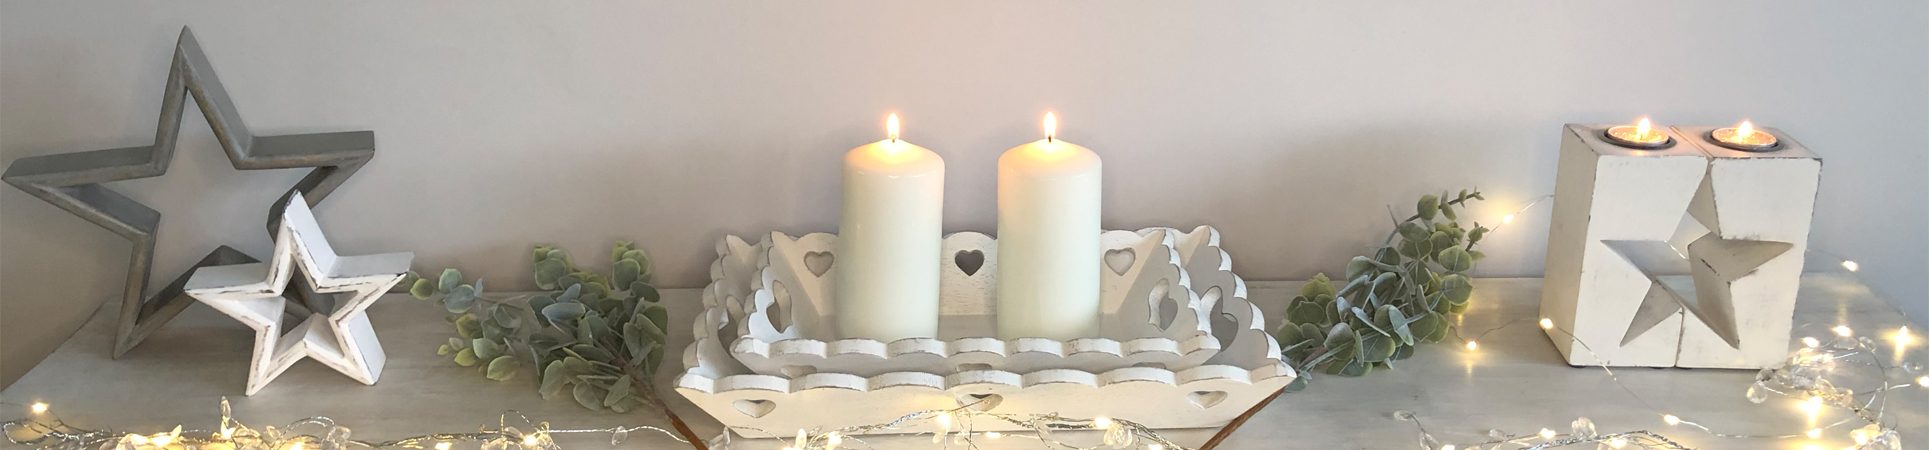 Ma Belle Maison - Christmas Home Decor and Gifts in Cheshire